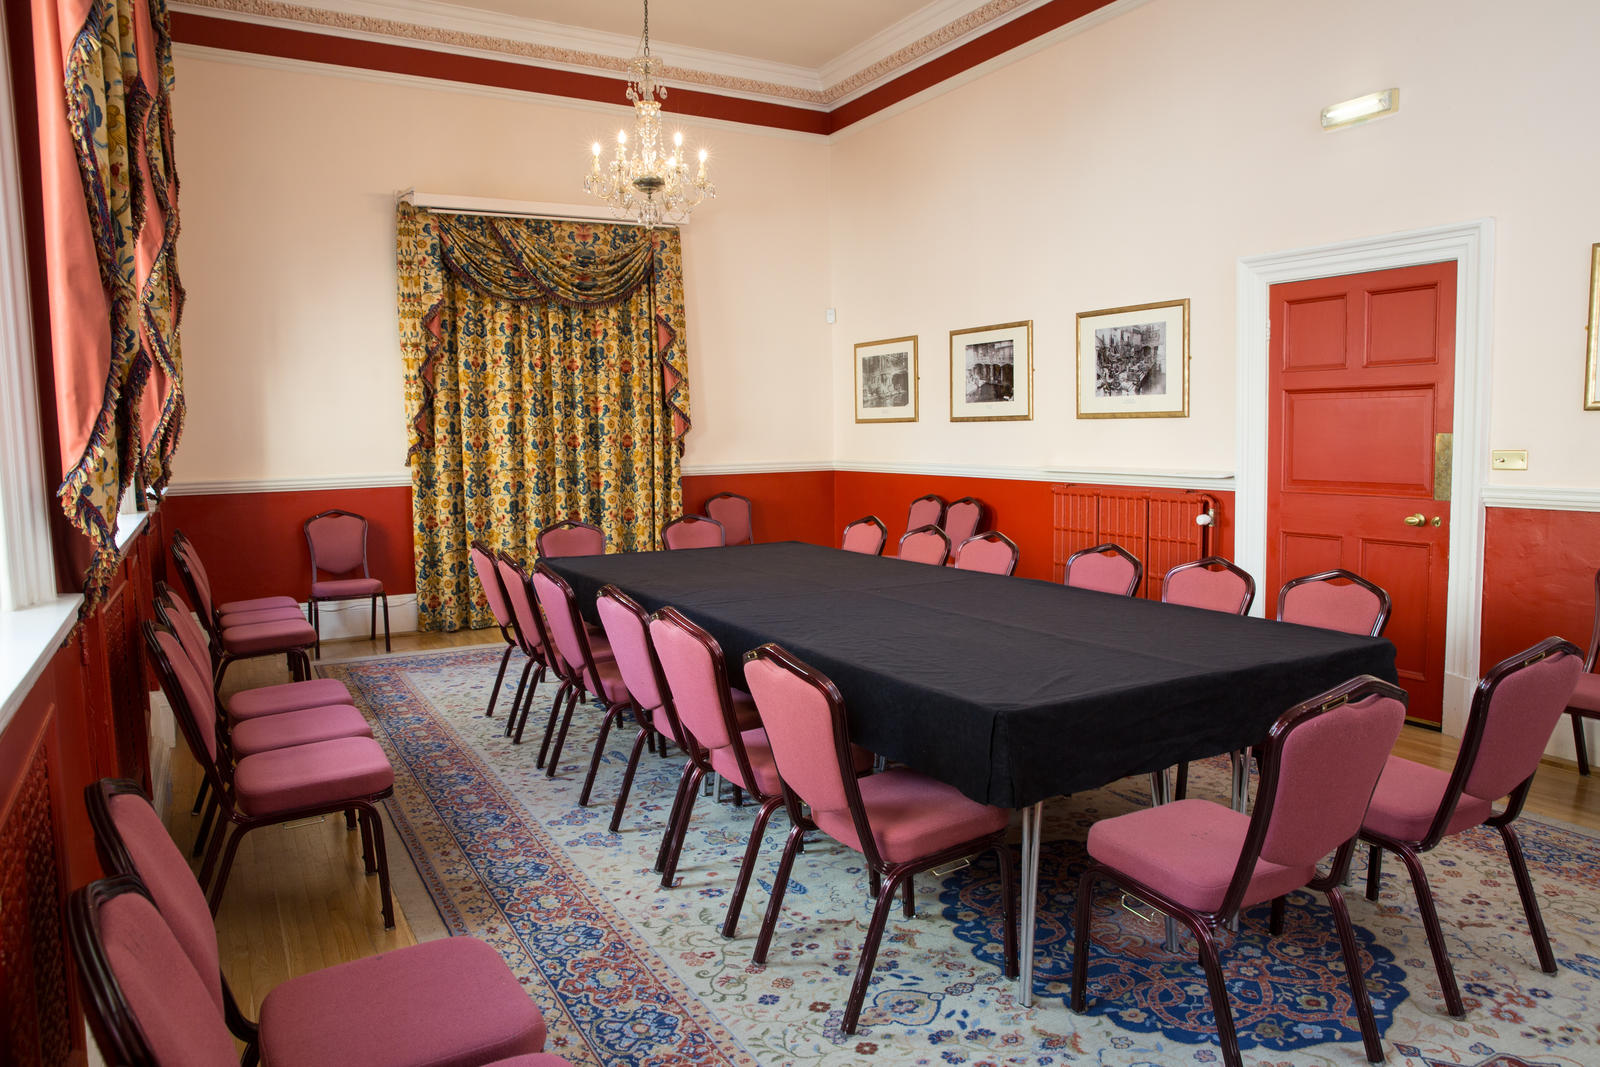 Image: Boardroom style meeting in the Kingston Room